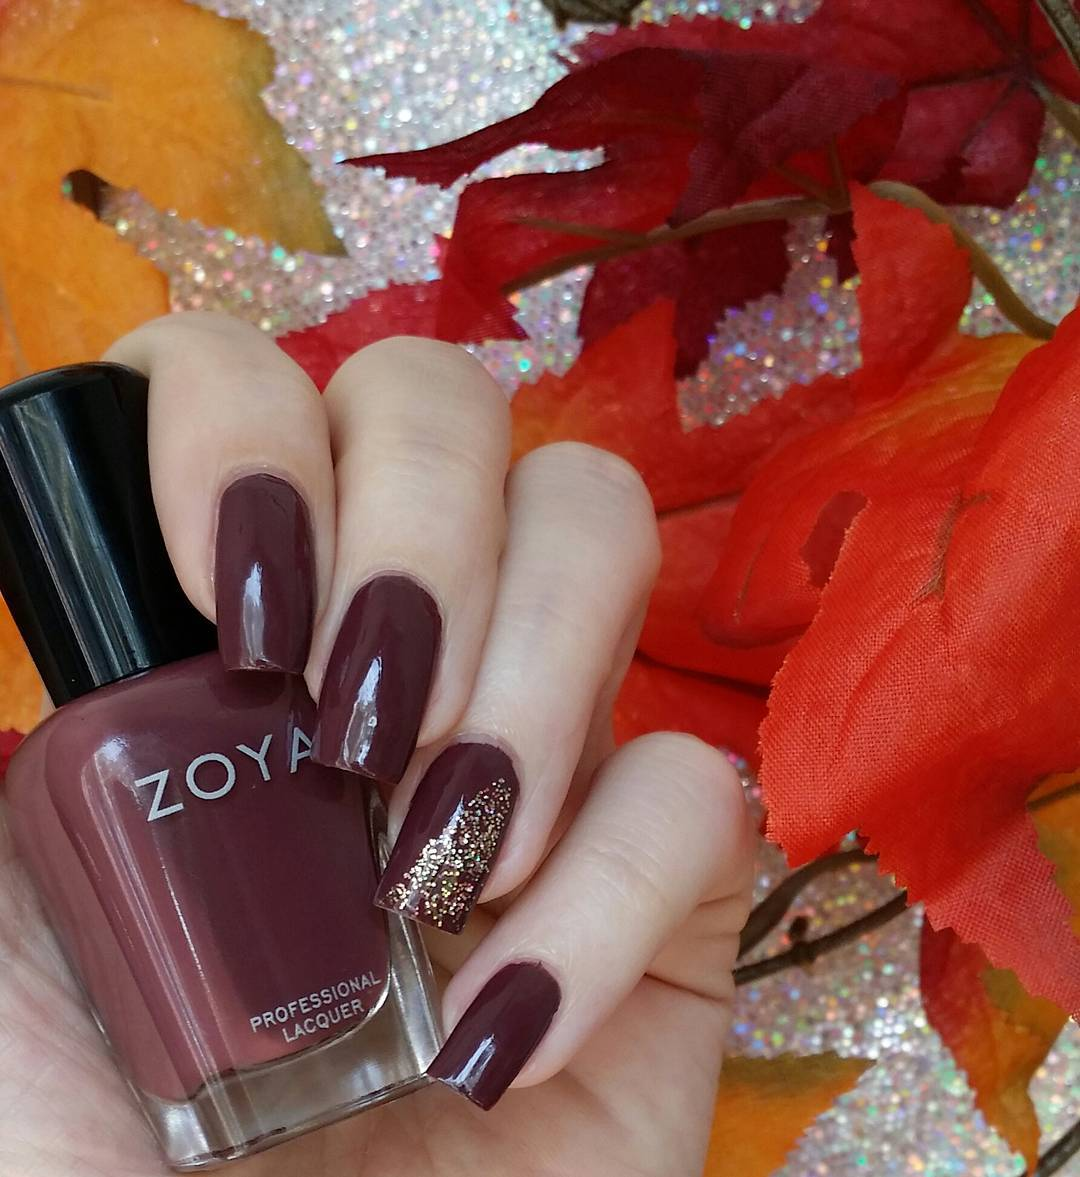 2017 Fall Nail Trends: Colors, Designs | Nailspiration.com